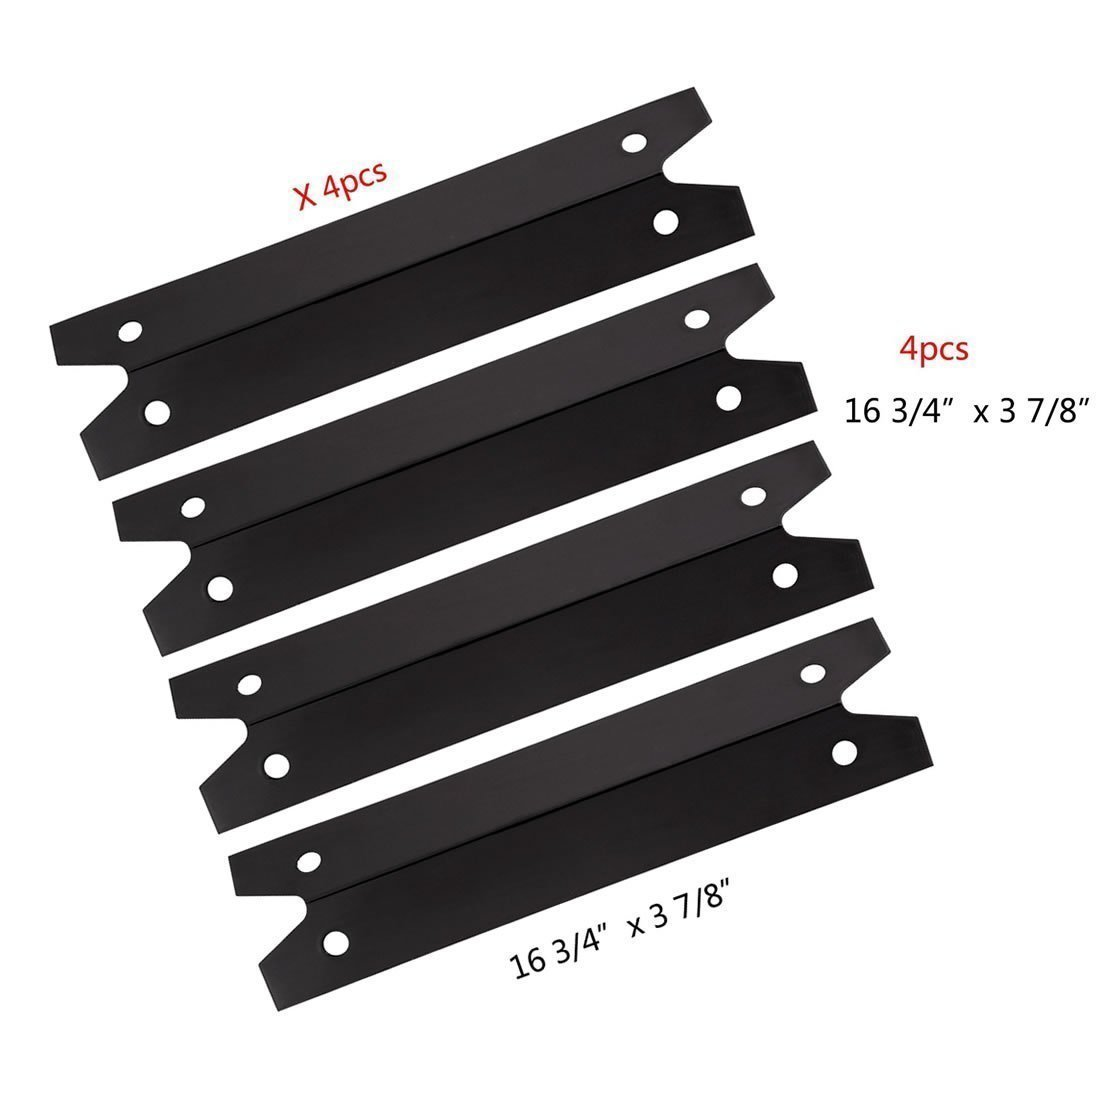 PPG311 BBQ Gas Grill Heat Plate/Heat Shield Replacement 4 ...